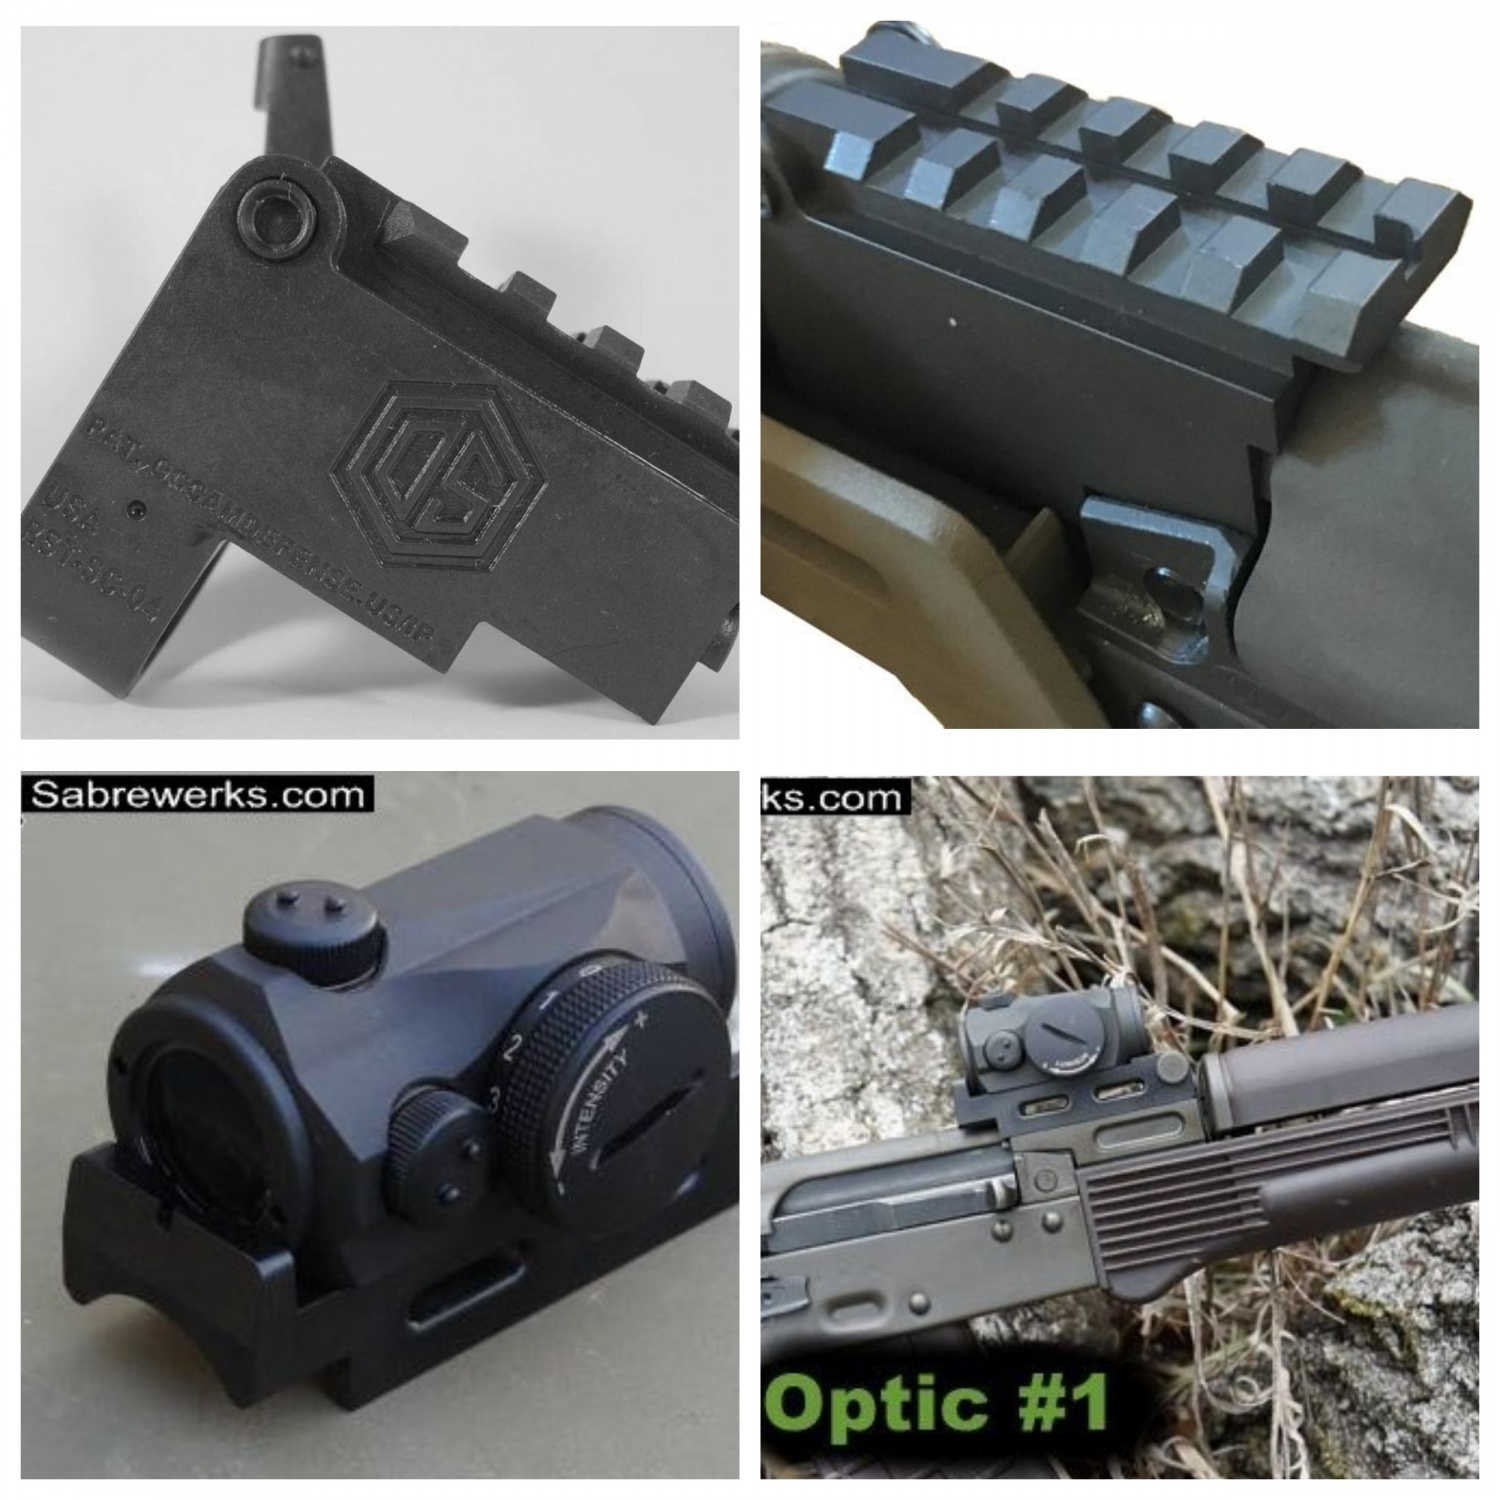 Both mounts are not a bad option, if you have a quality and reliable red dot.